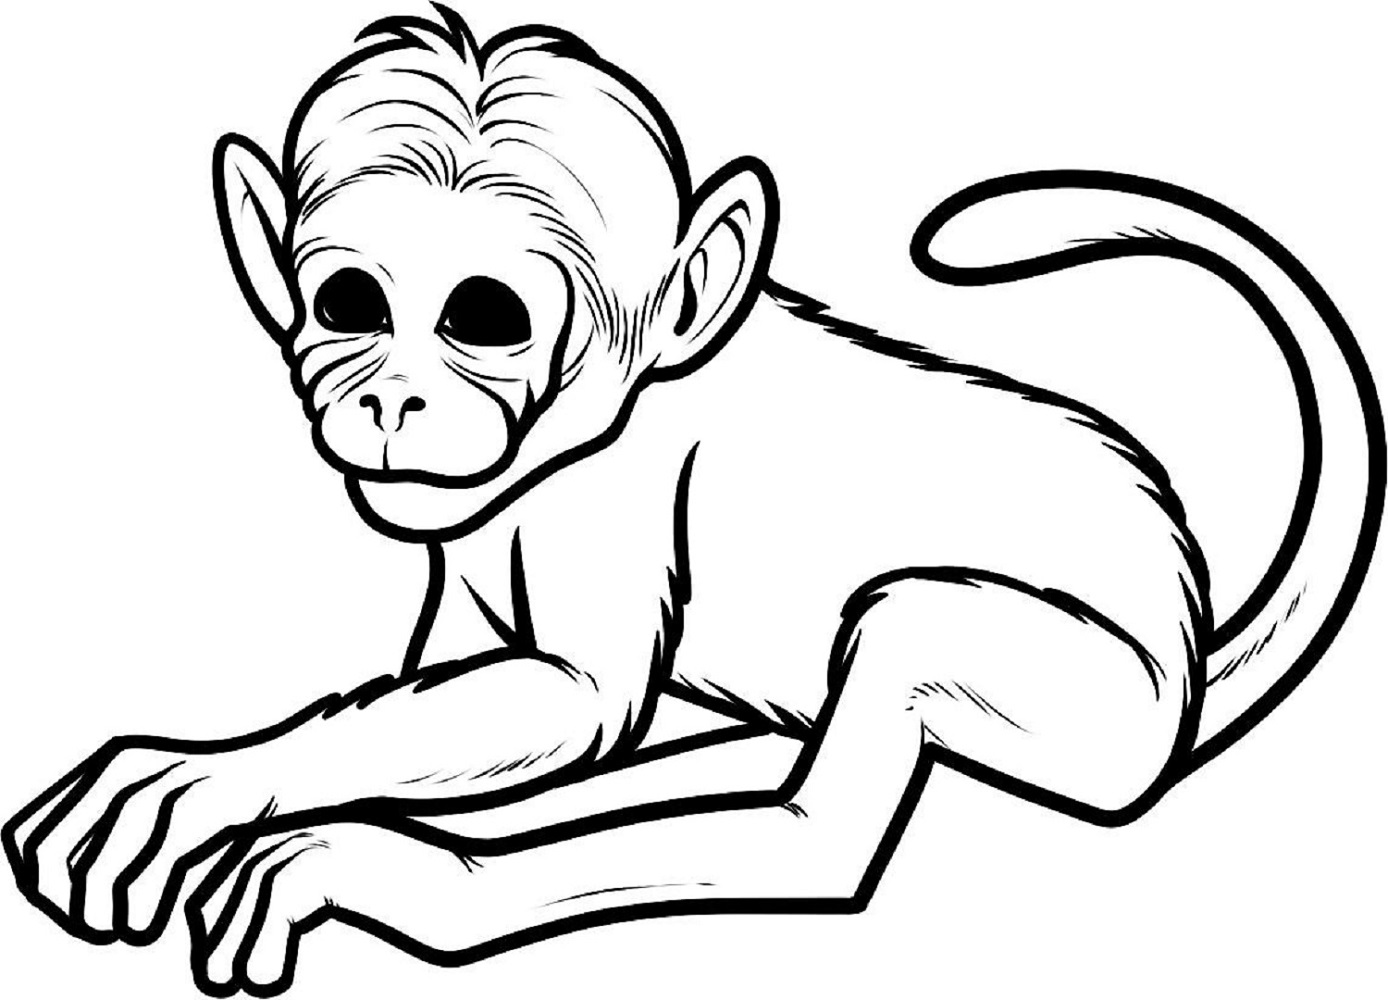 images of monkeys for school